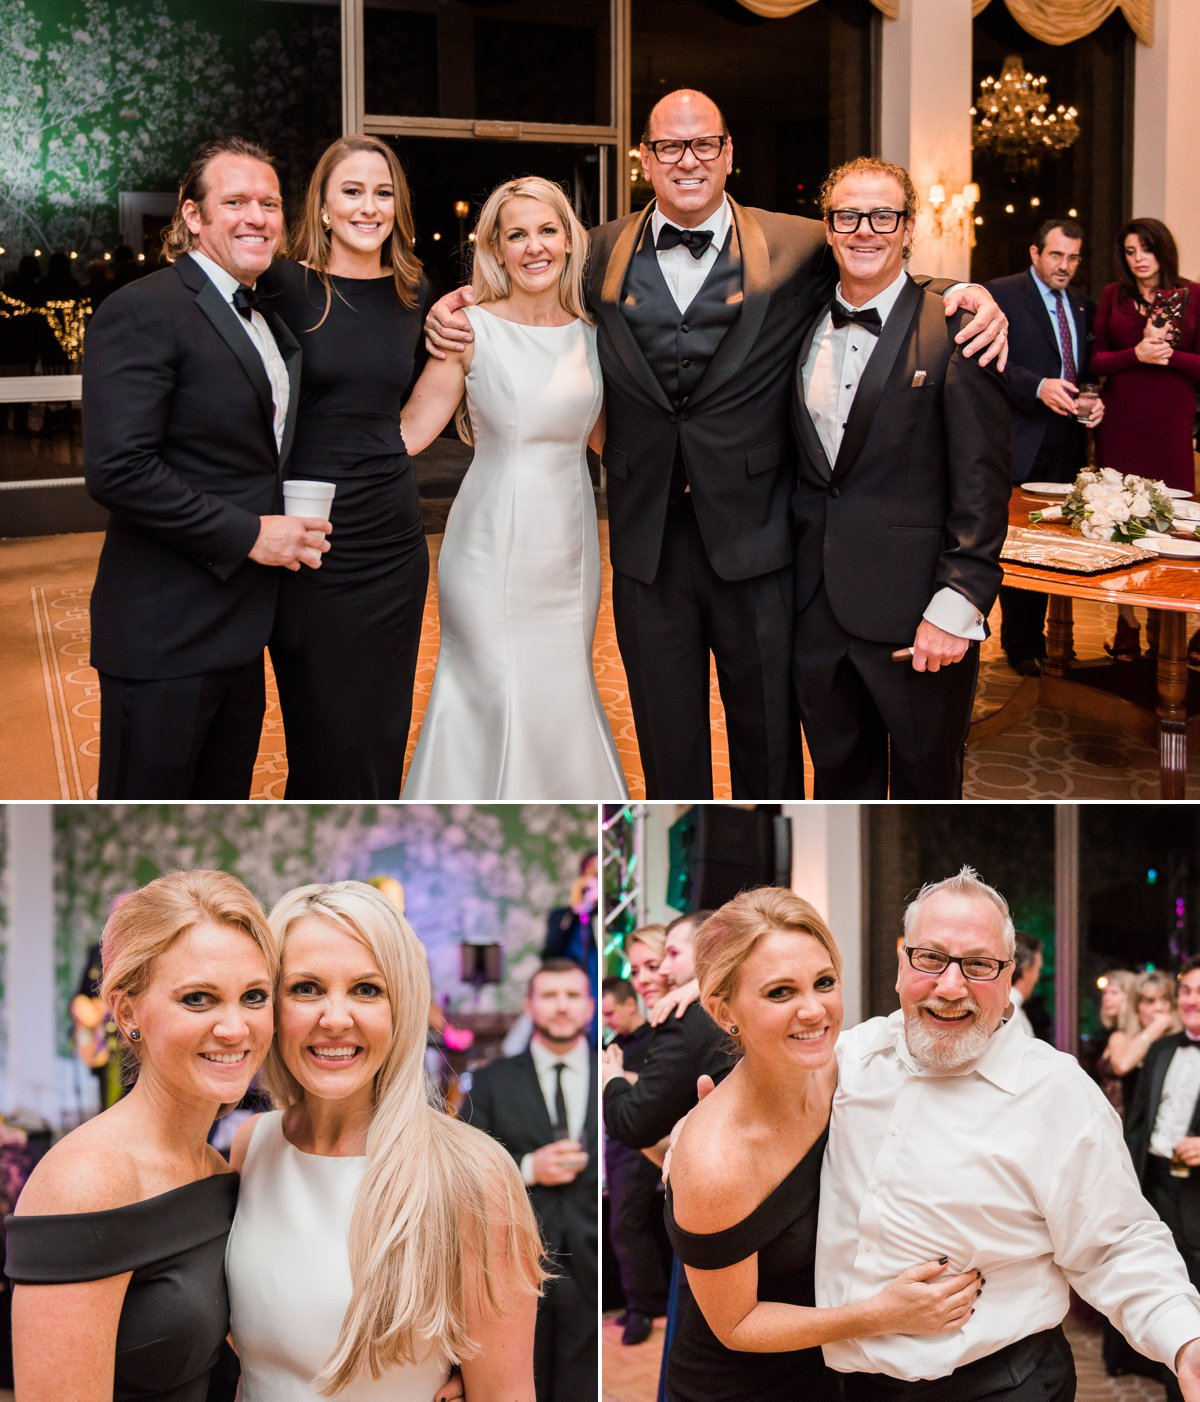 Kaitlyn-Stewart River Oaks Wedding Photography by Nate Messarra